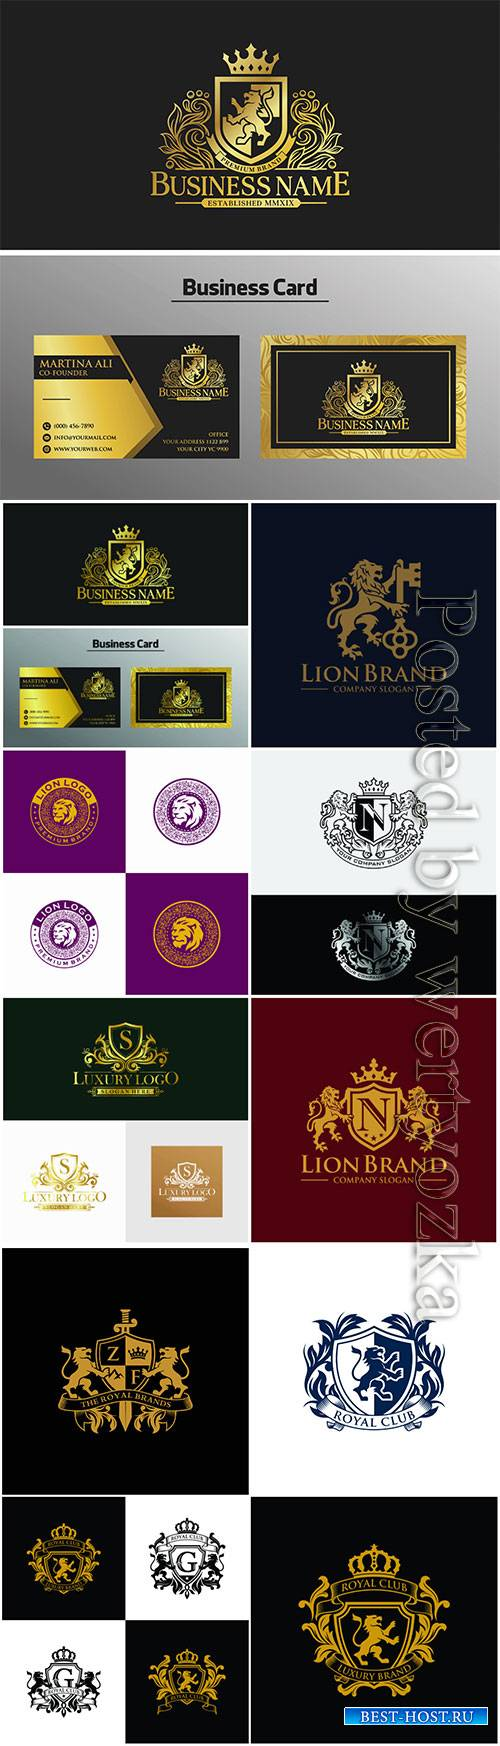 Golden luxury lion logo vector design